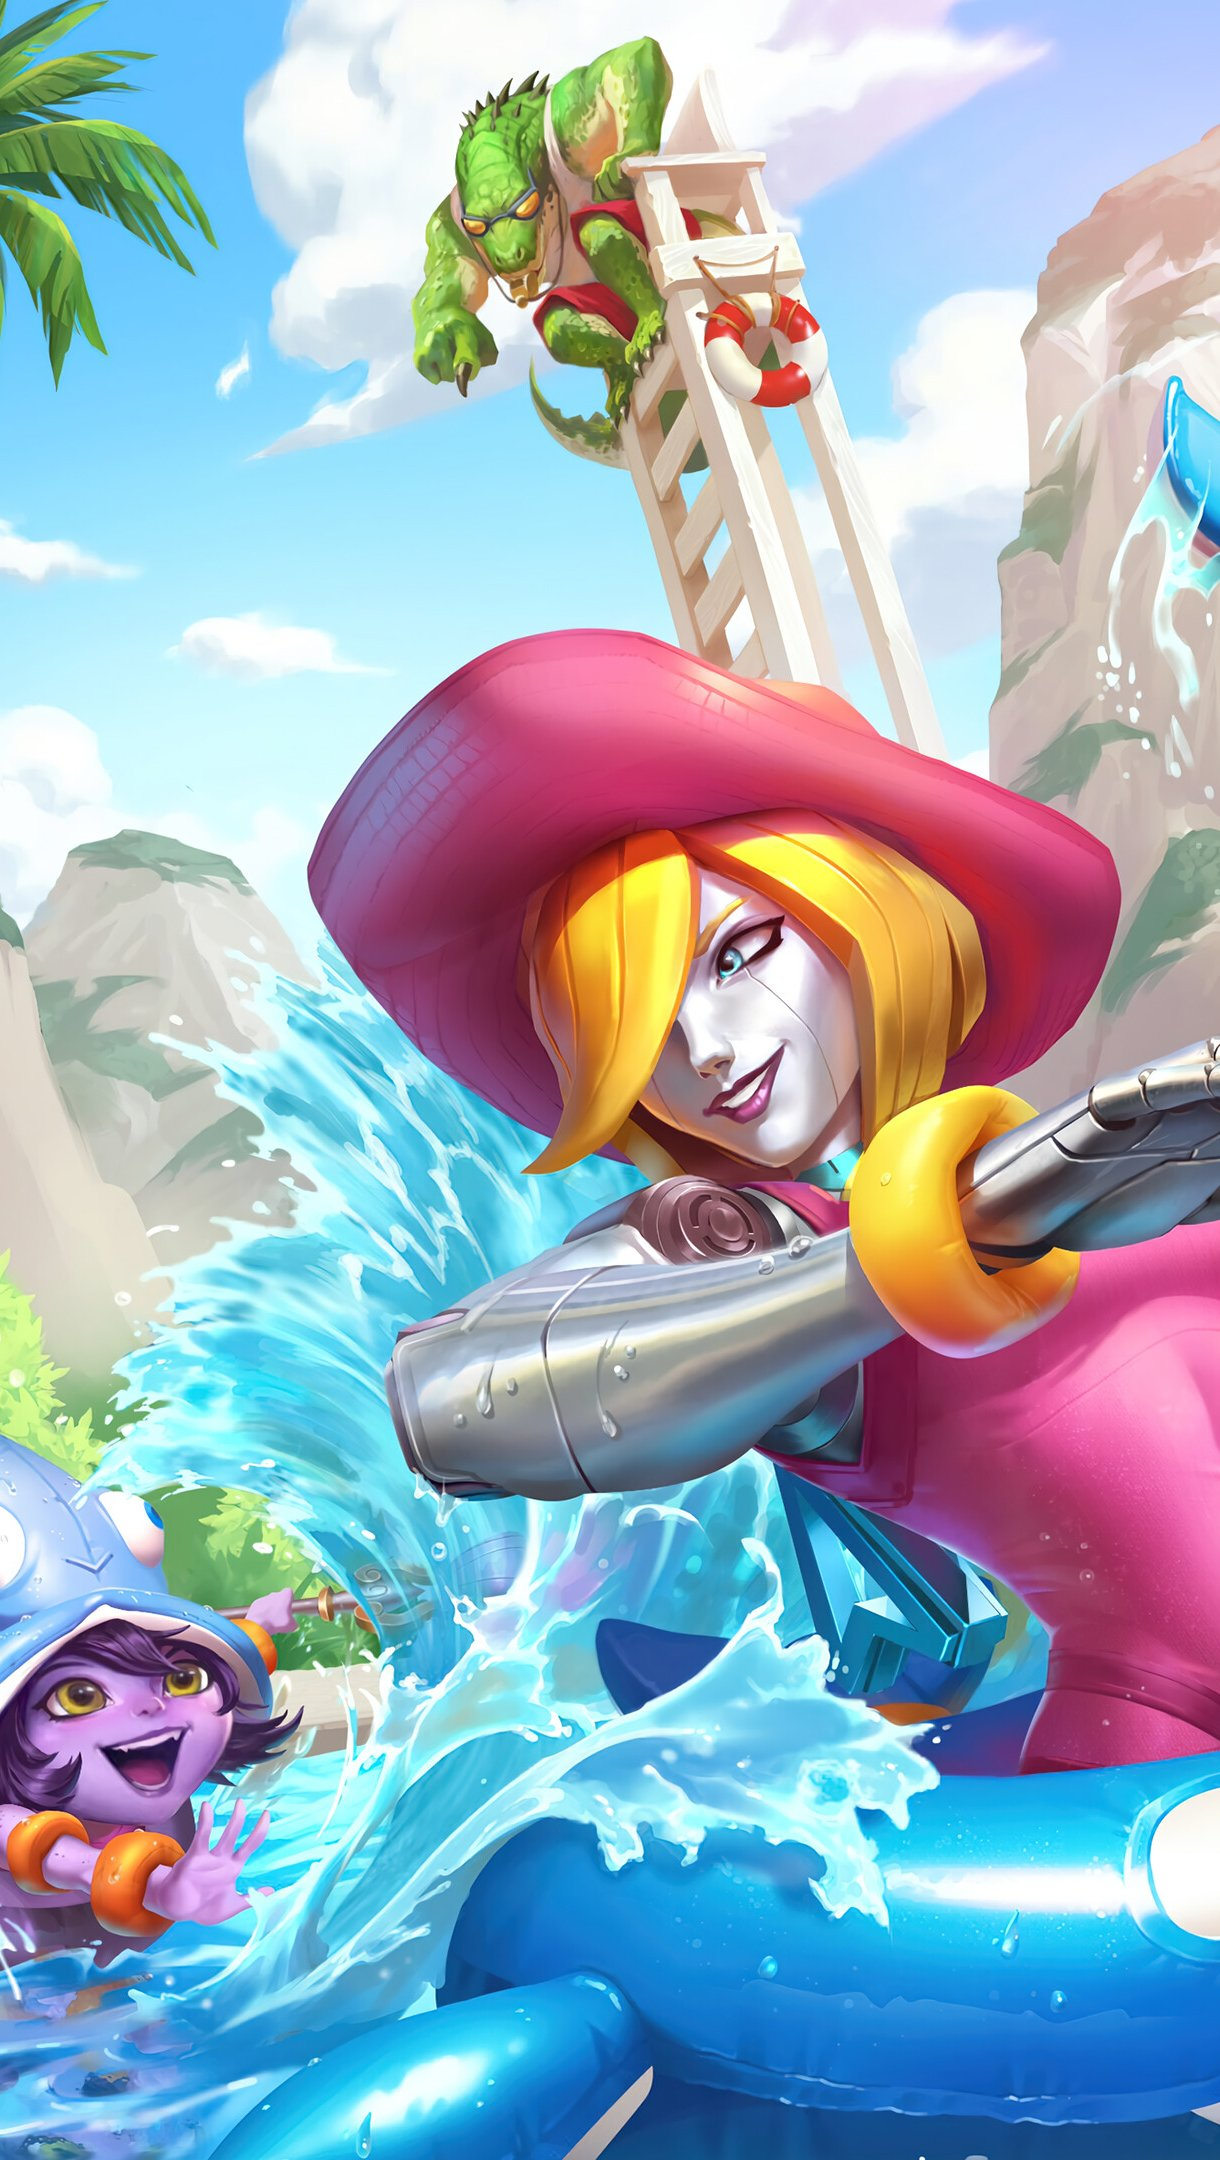 Wallpaper Oriana and Lulu League of Legends Rift Pool Party Vertical